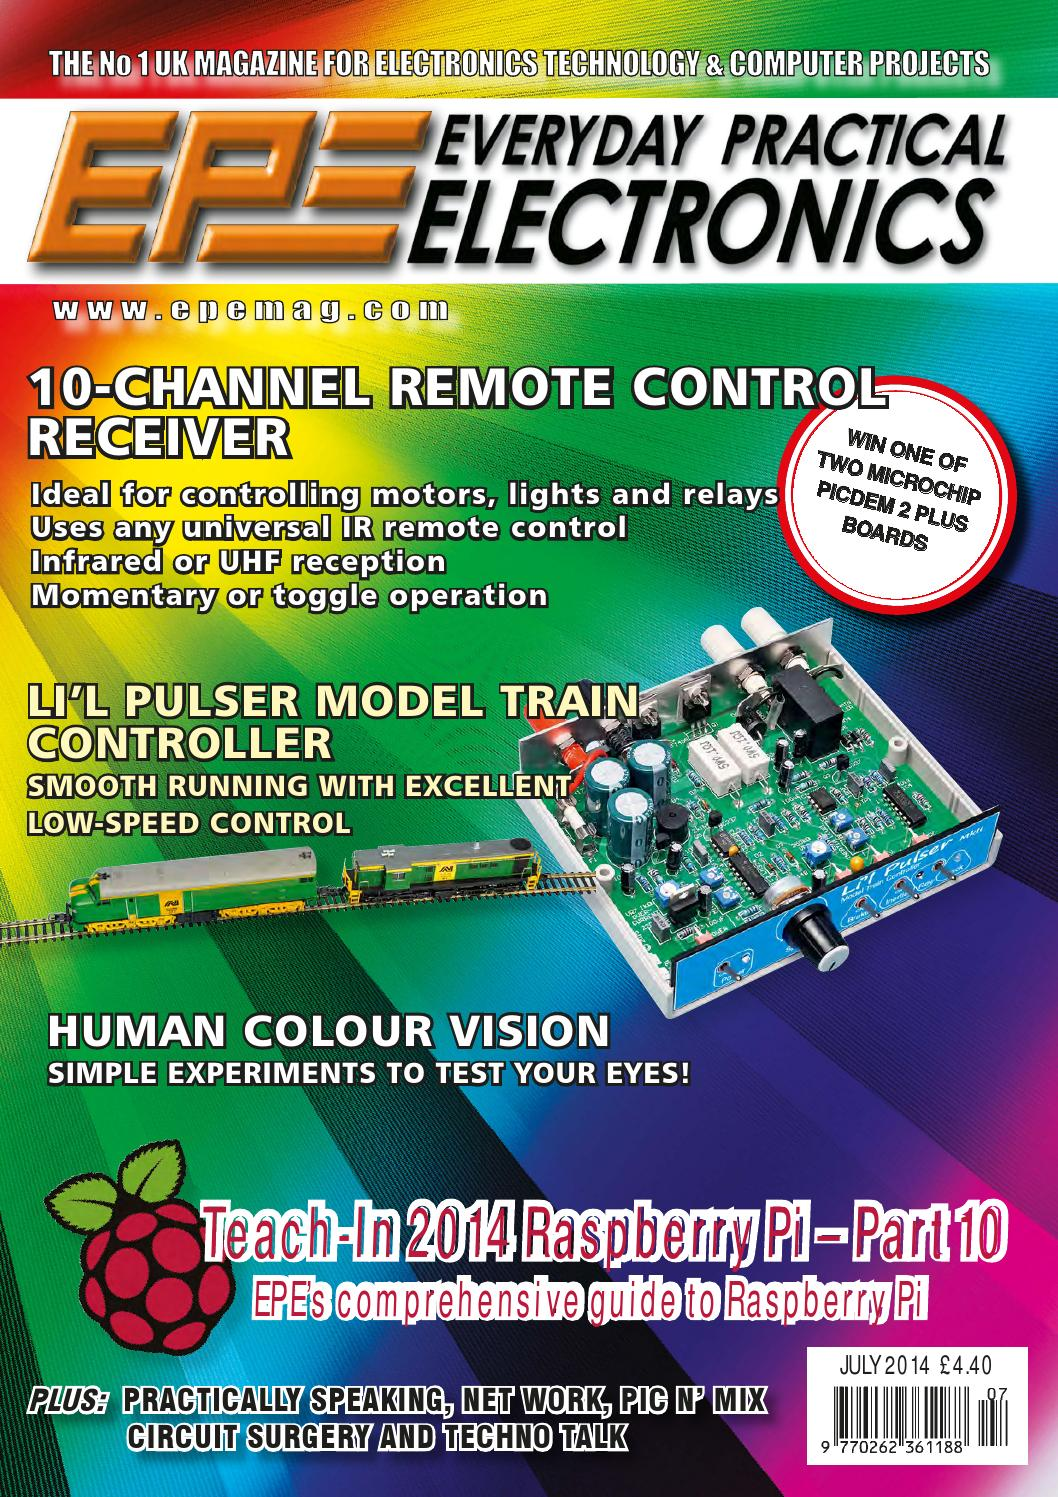 Everyday Practical Electronics 2014 07 By Yurgen Issuu Audio Kit Digital Thermometer With Pic16f84 Circuit